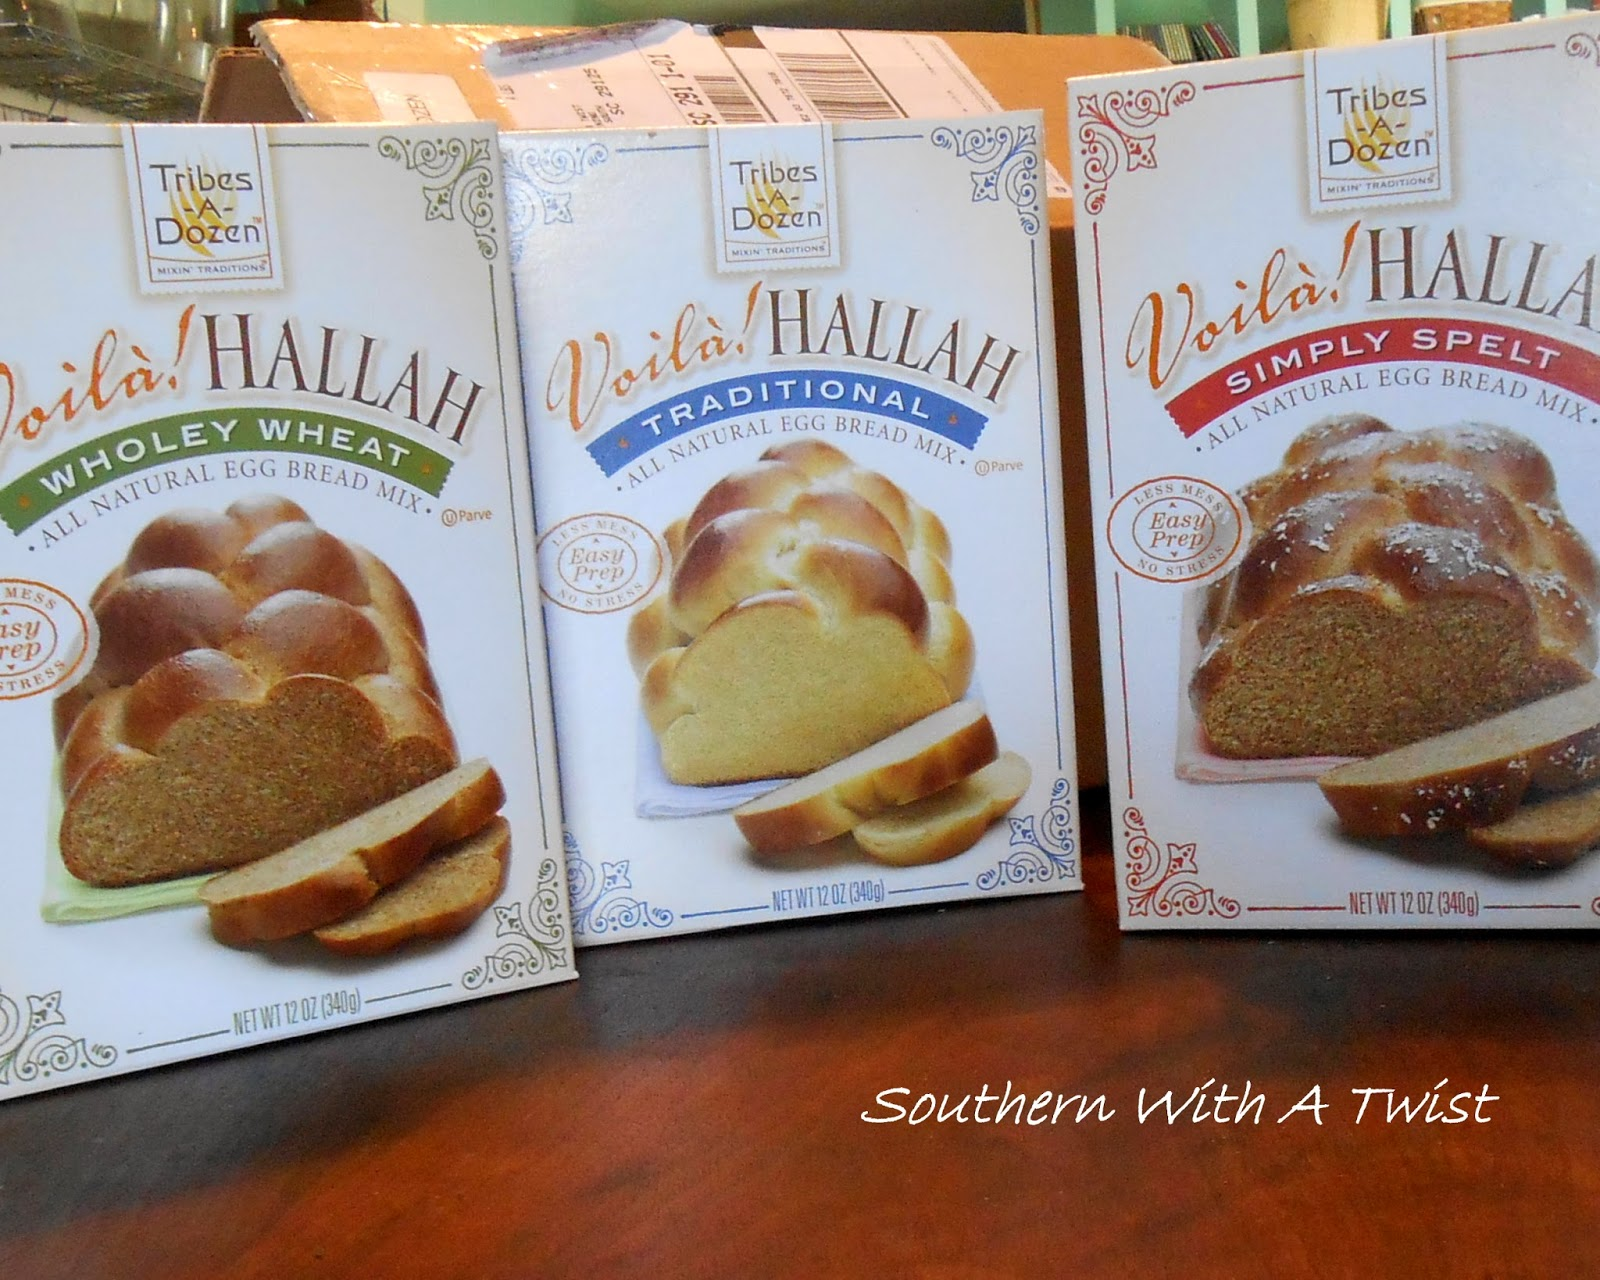 bread, doughnuts, and tarts! oh my! with voila! hallah bread mixes from tribes-a-dozen